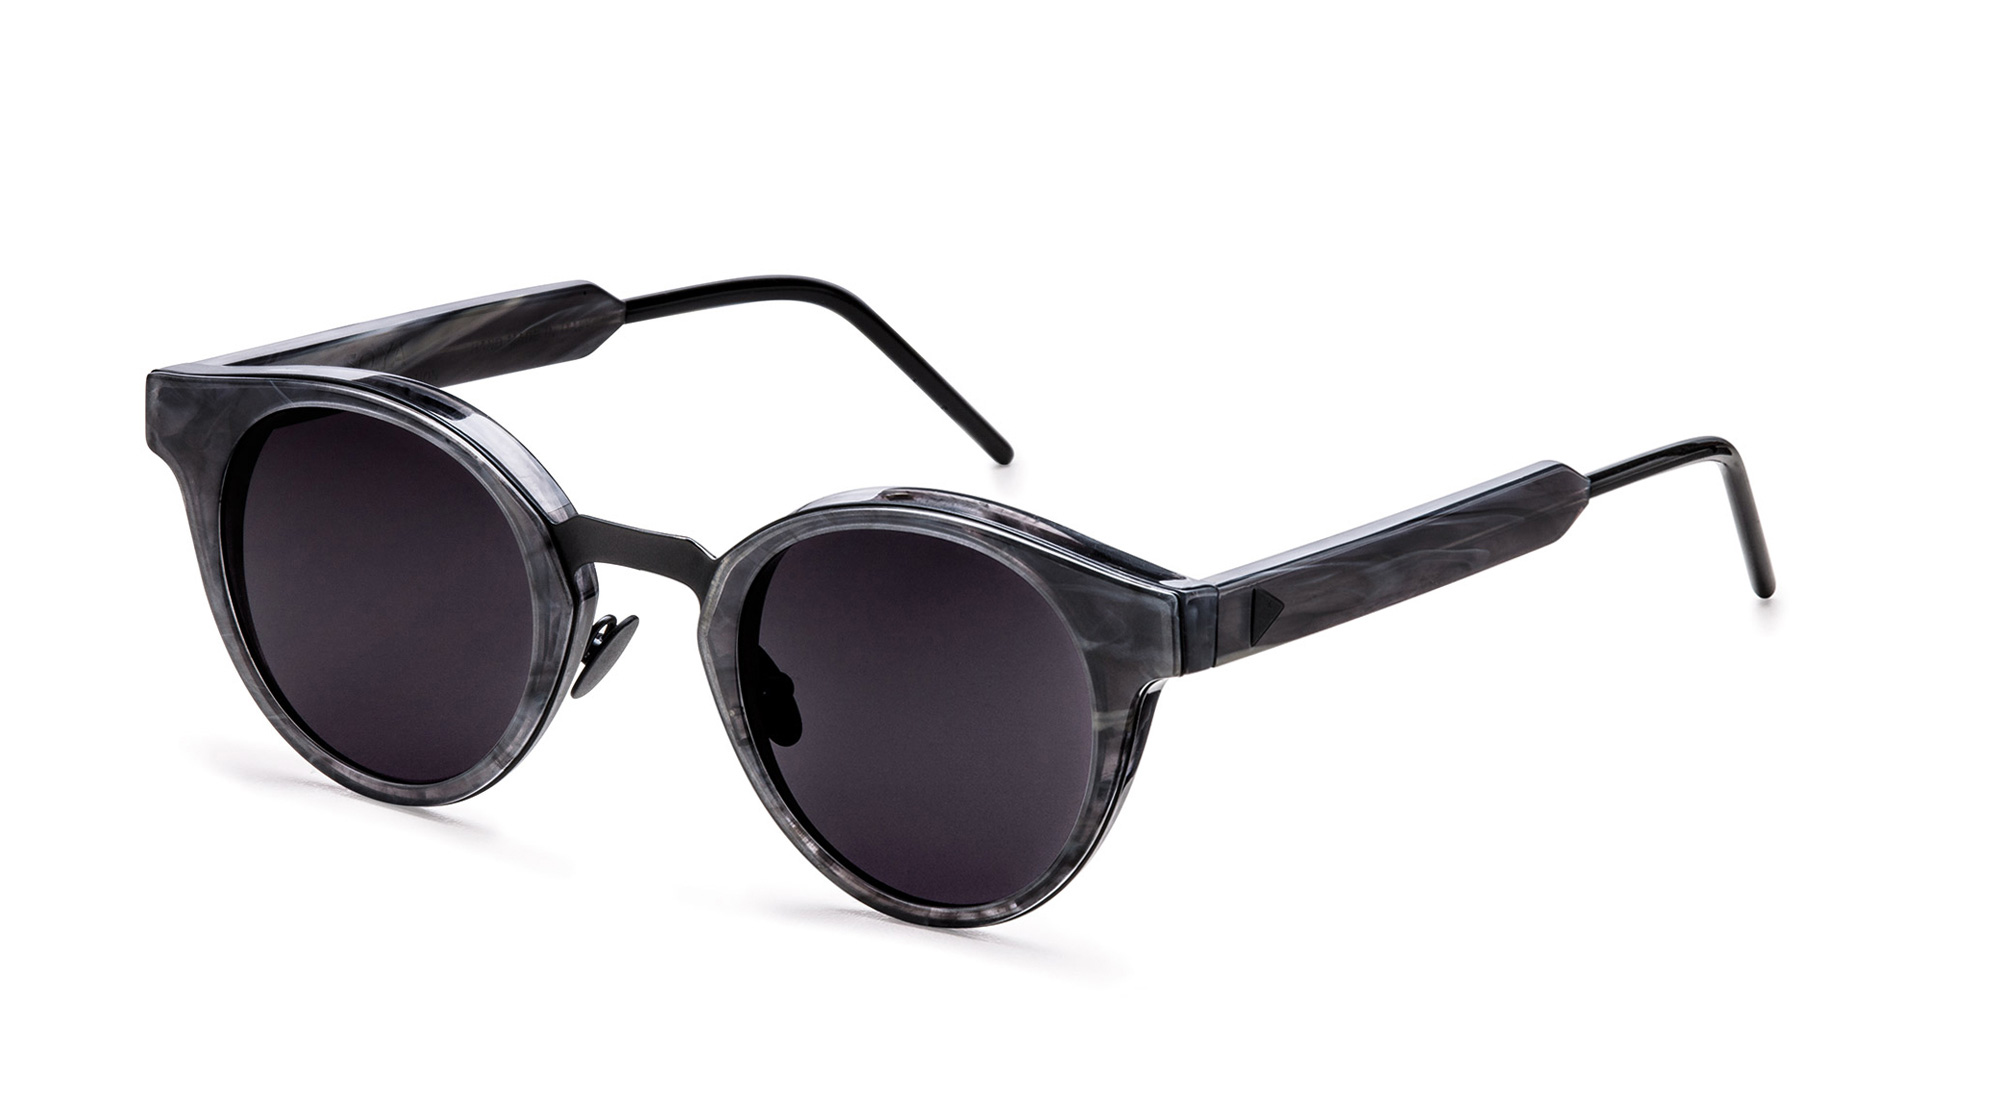 WILLIAMS_Eyewear_SOYA_BlackMarble_3-4View